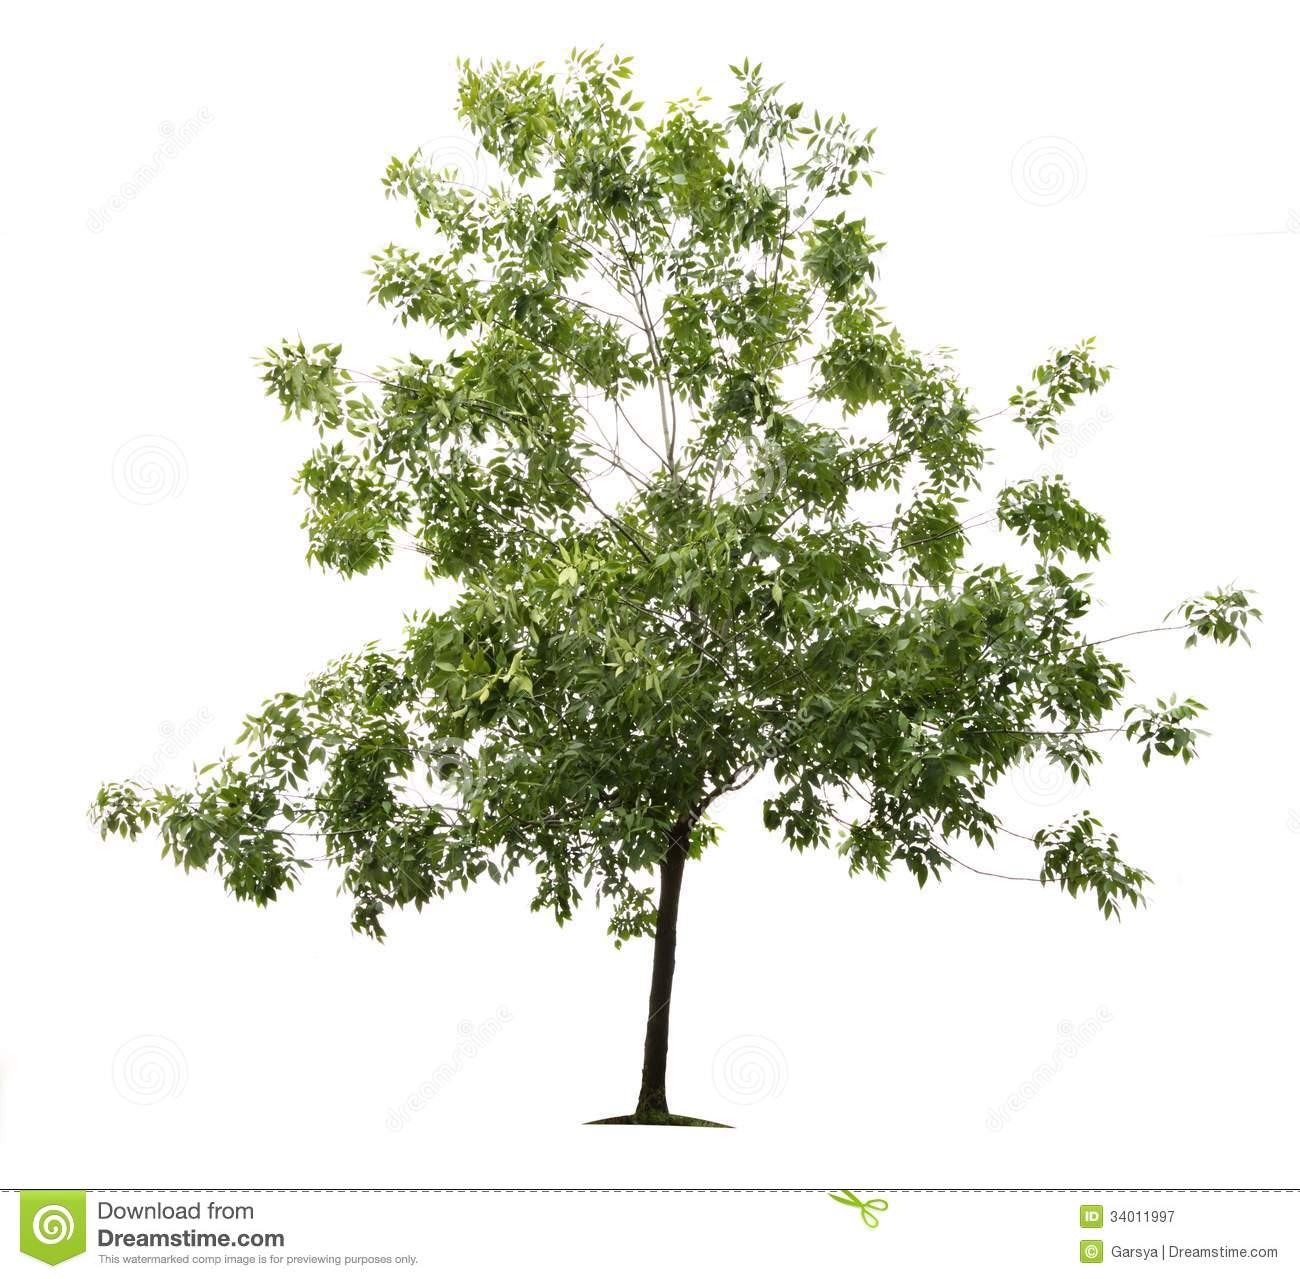 Green Ash Tree Royalty Free Stock Photography - Image: 34011997